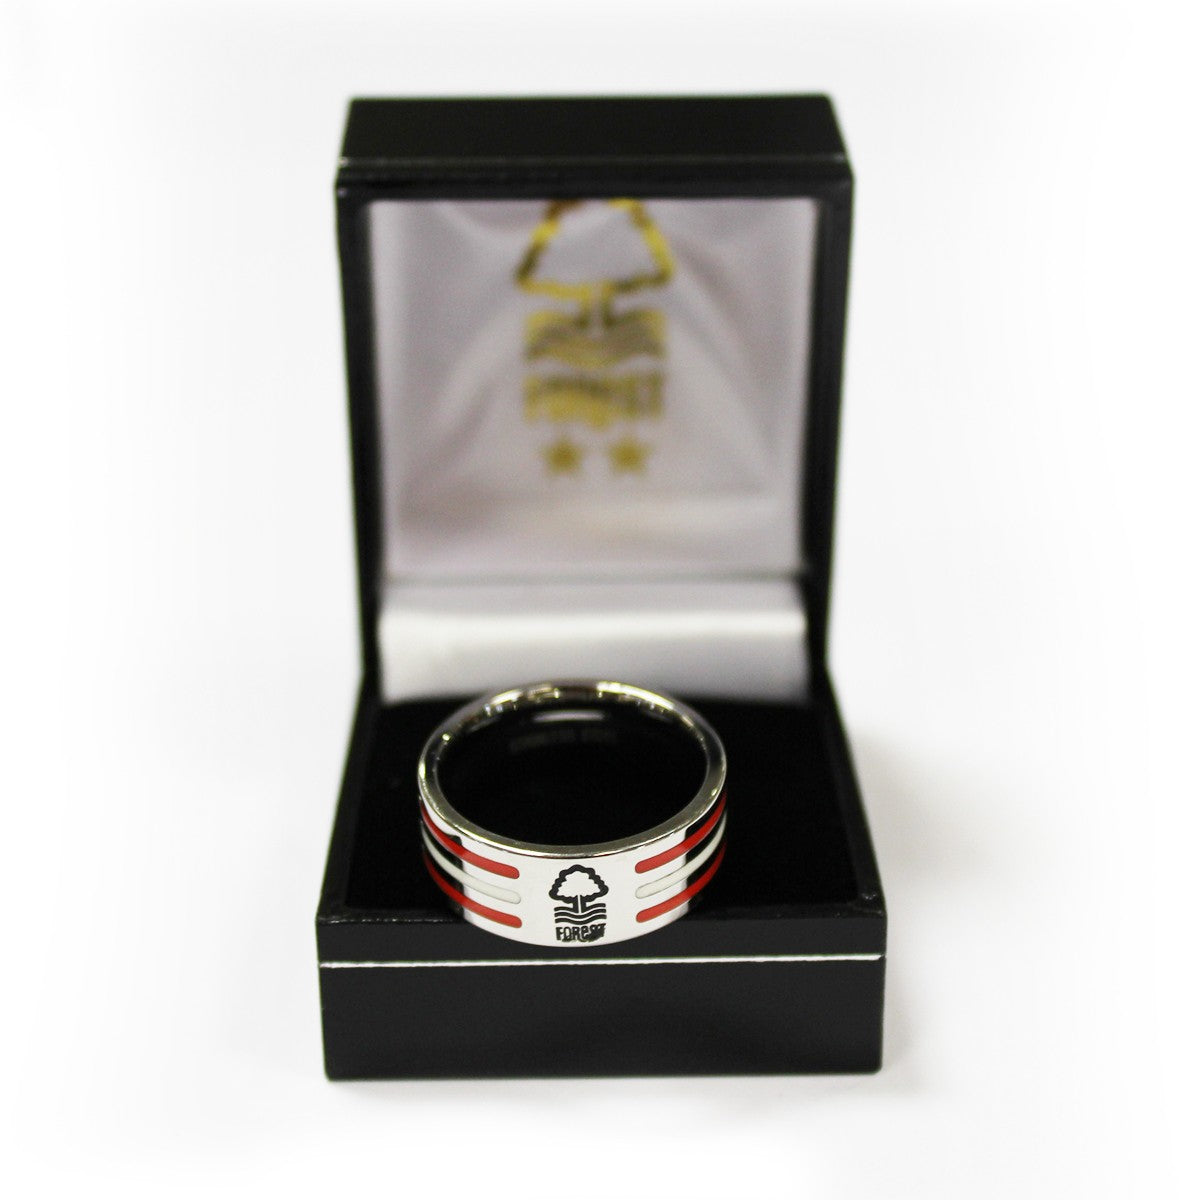 NFFC Colour Stripe Crest Ring - Nottingham Forest